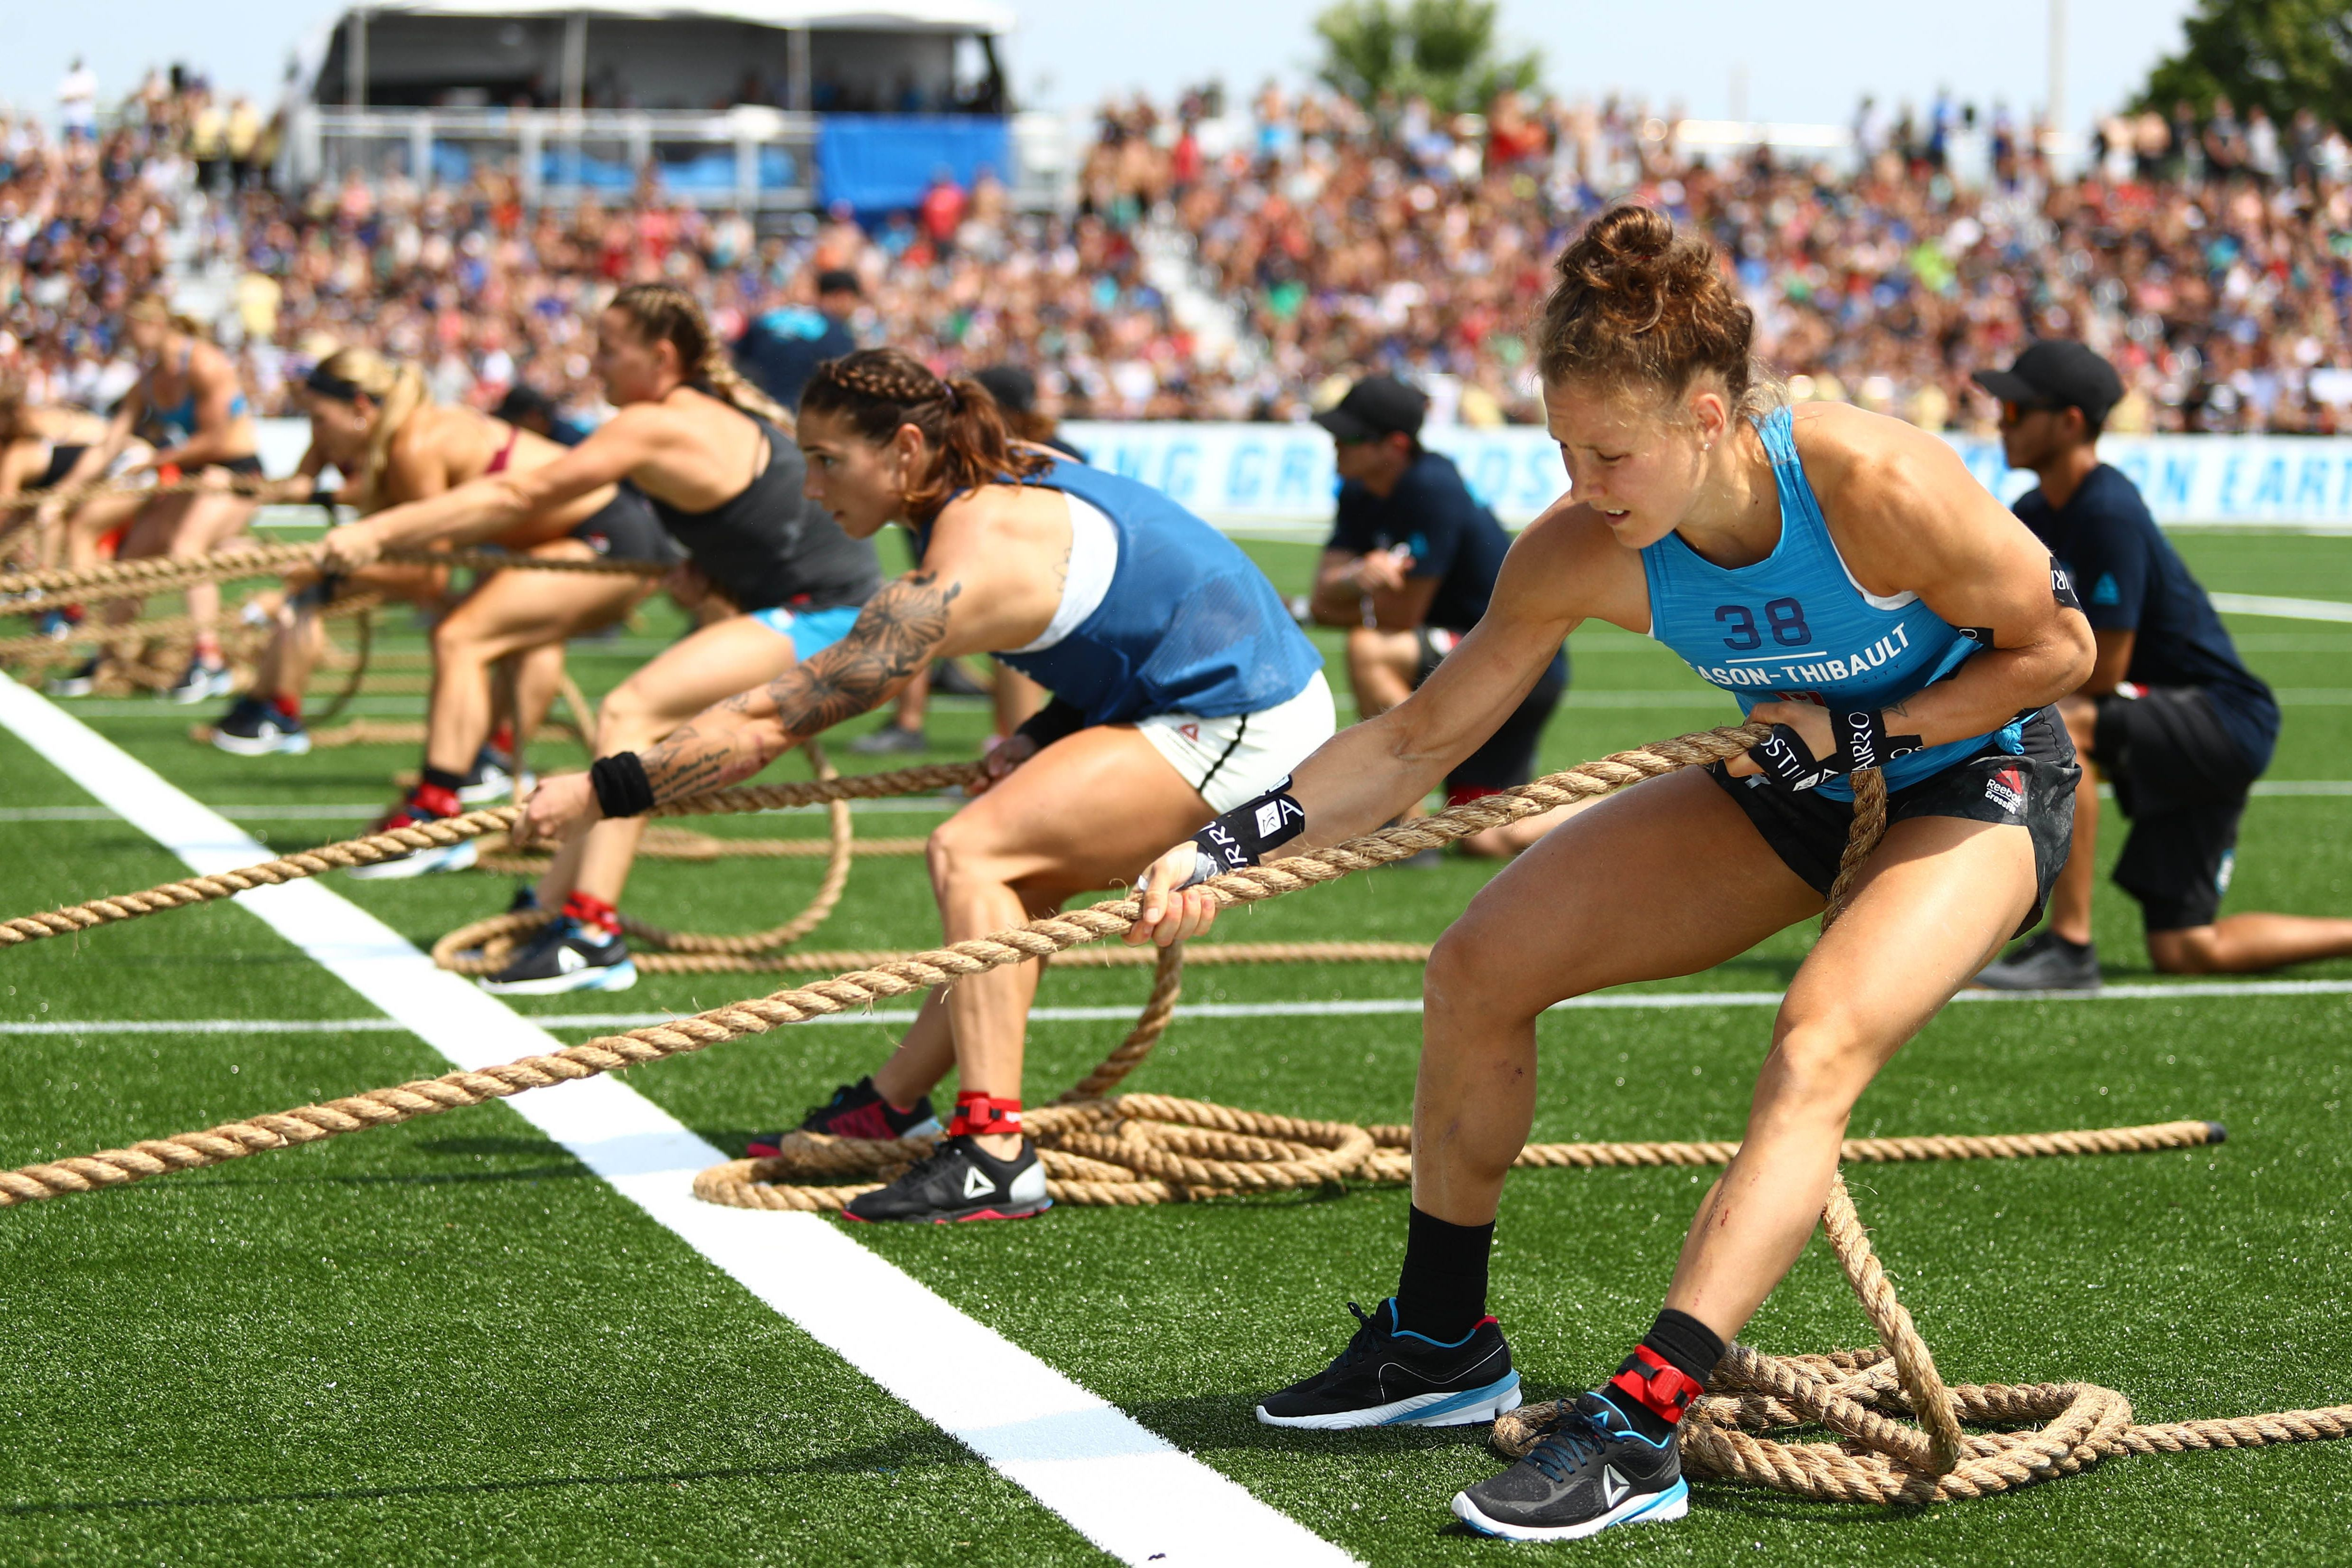 5 Women Who Will Dominate at the 2019 CrossFit Games